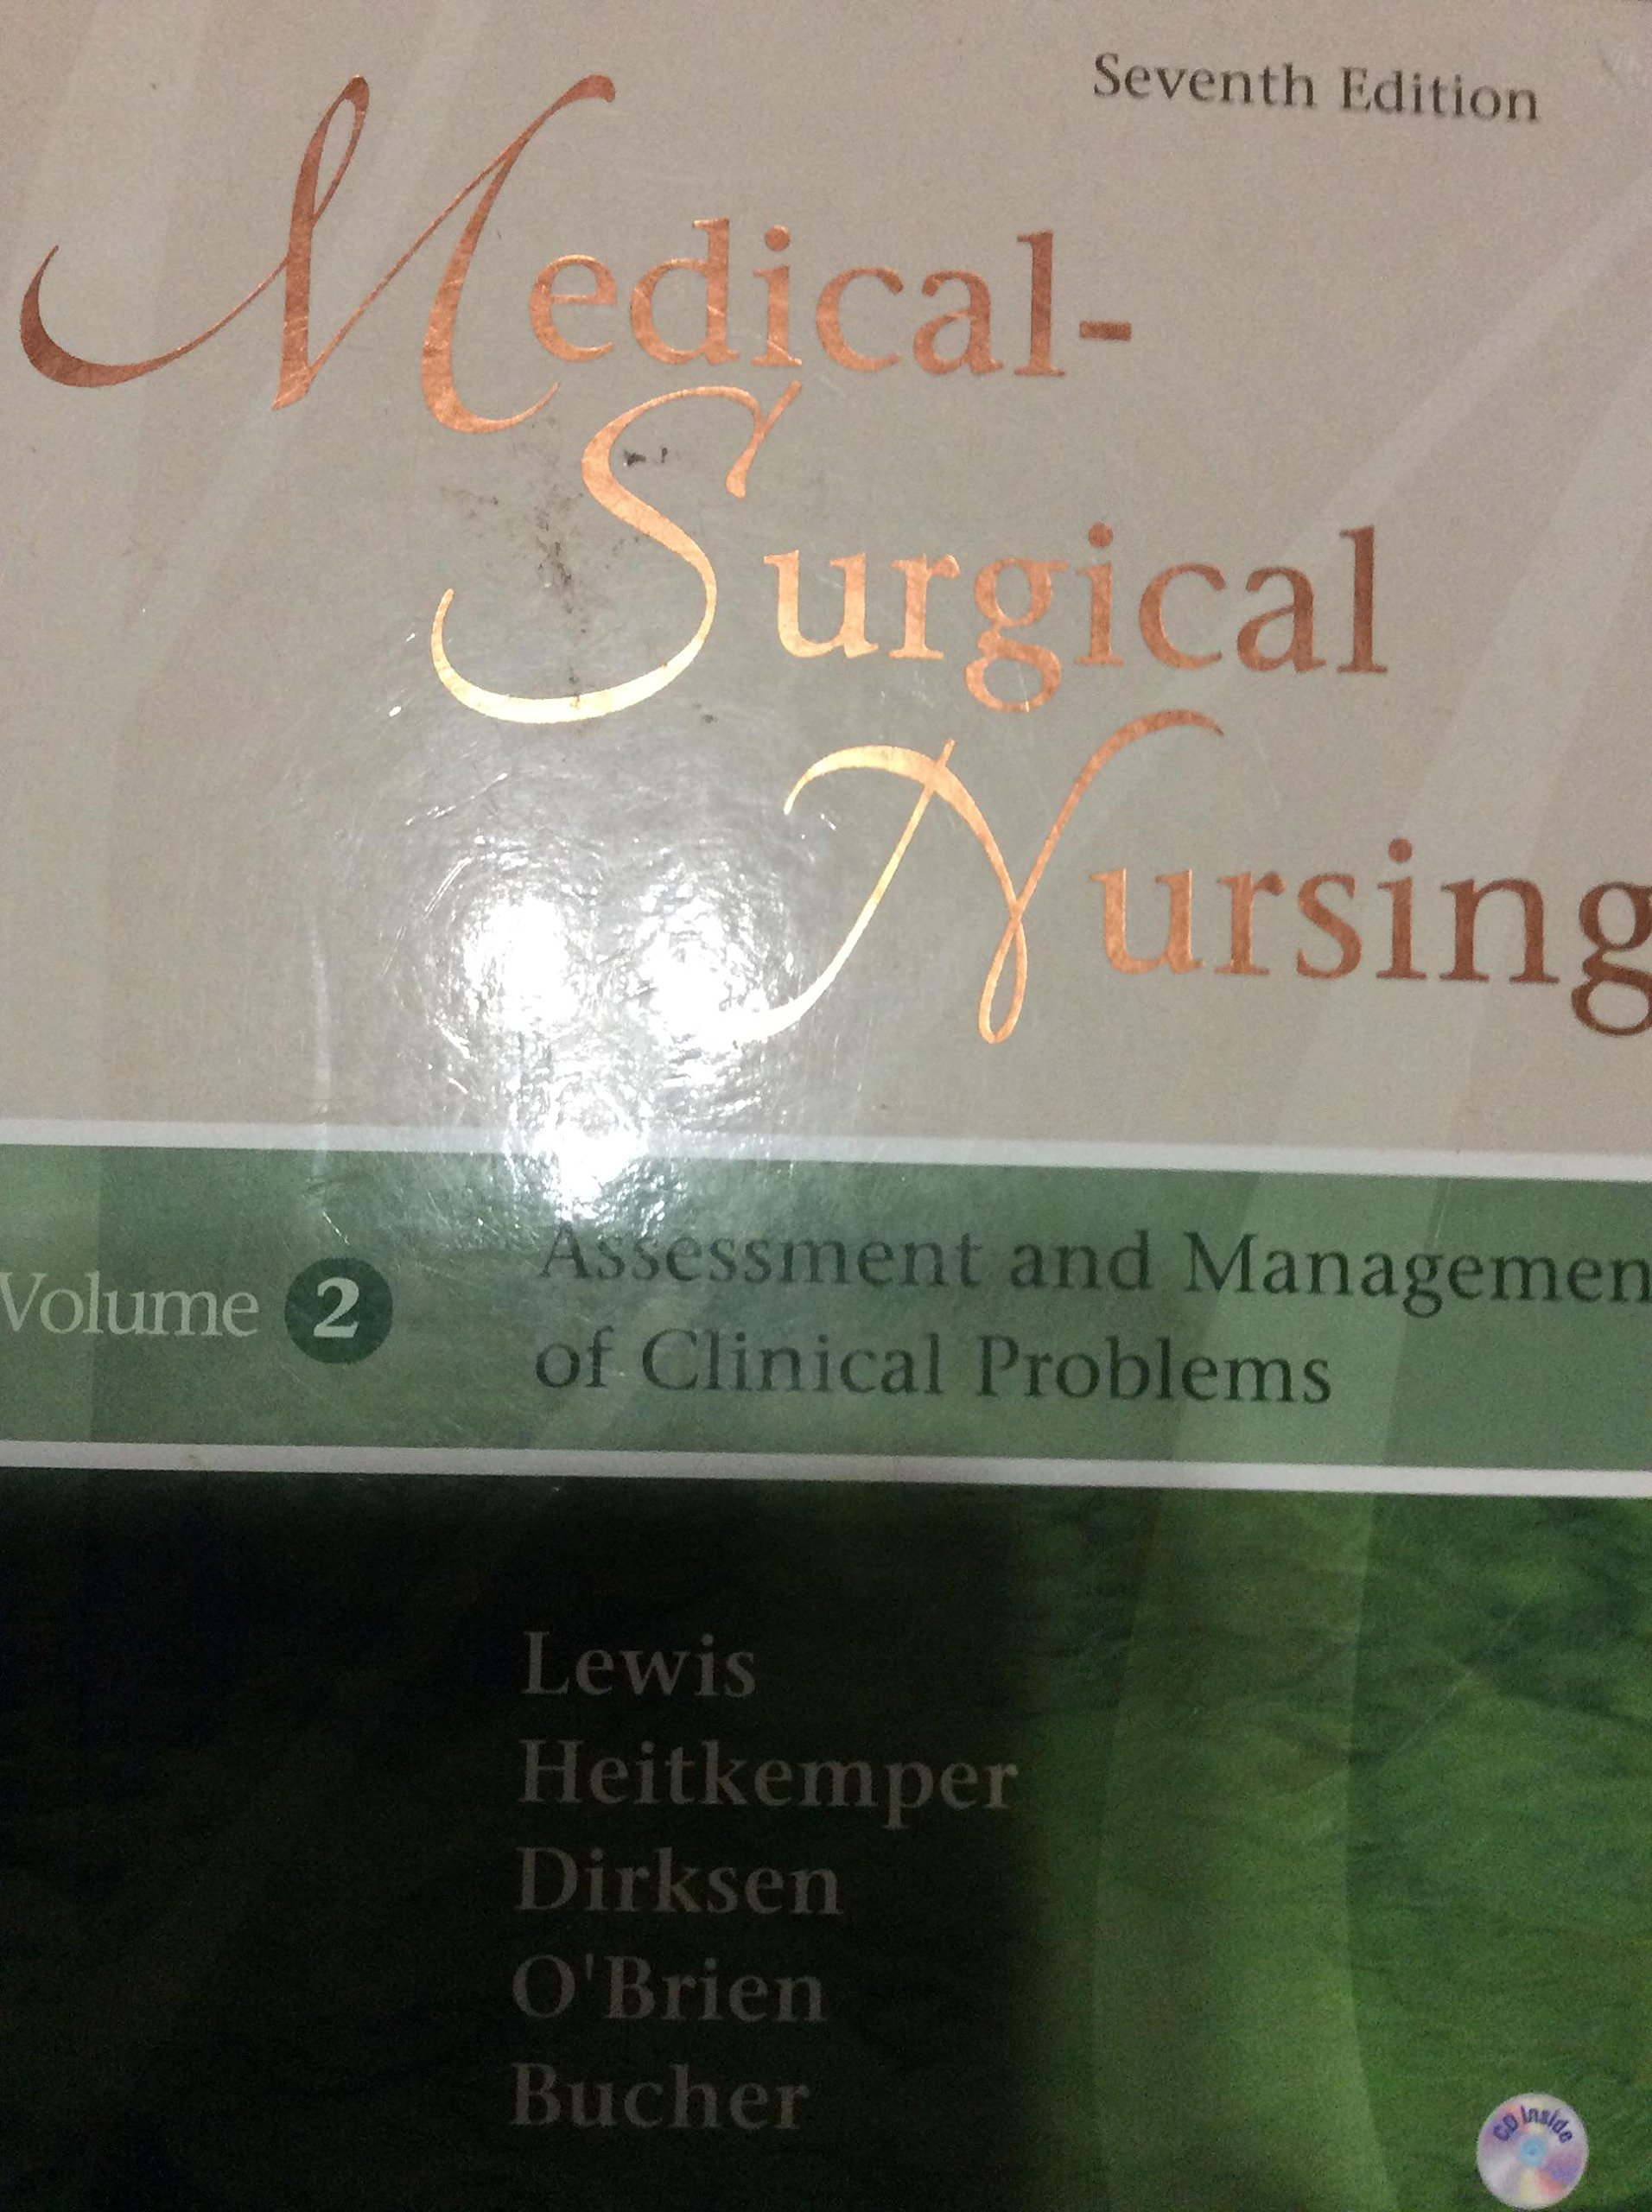 Download Medical- Surgical Nursing Assessment and Management of Clinical Problems (Volume 1. 7th Edition) PDF